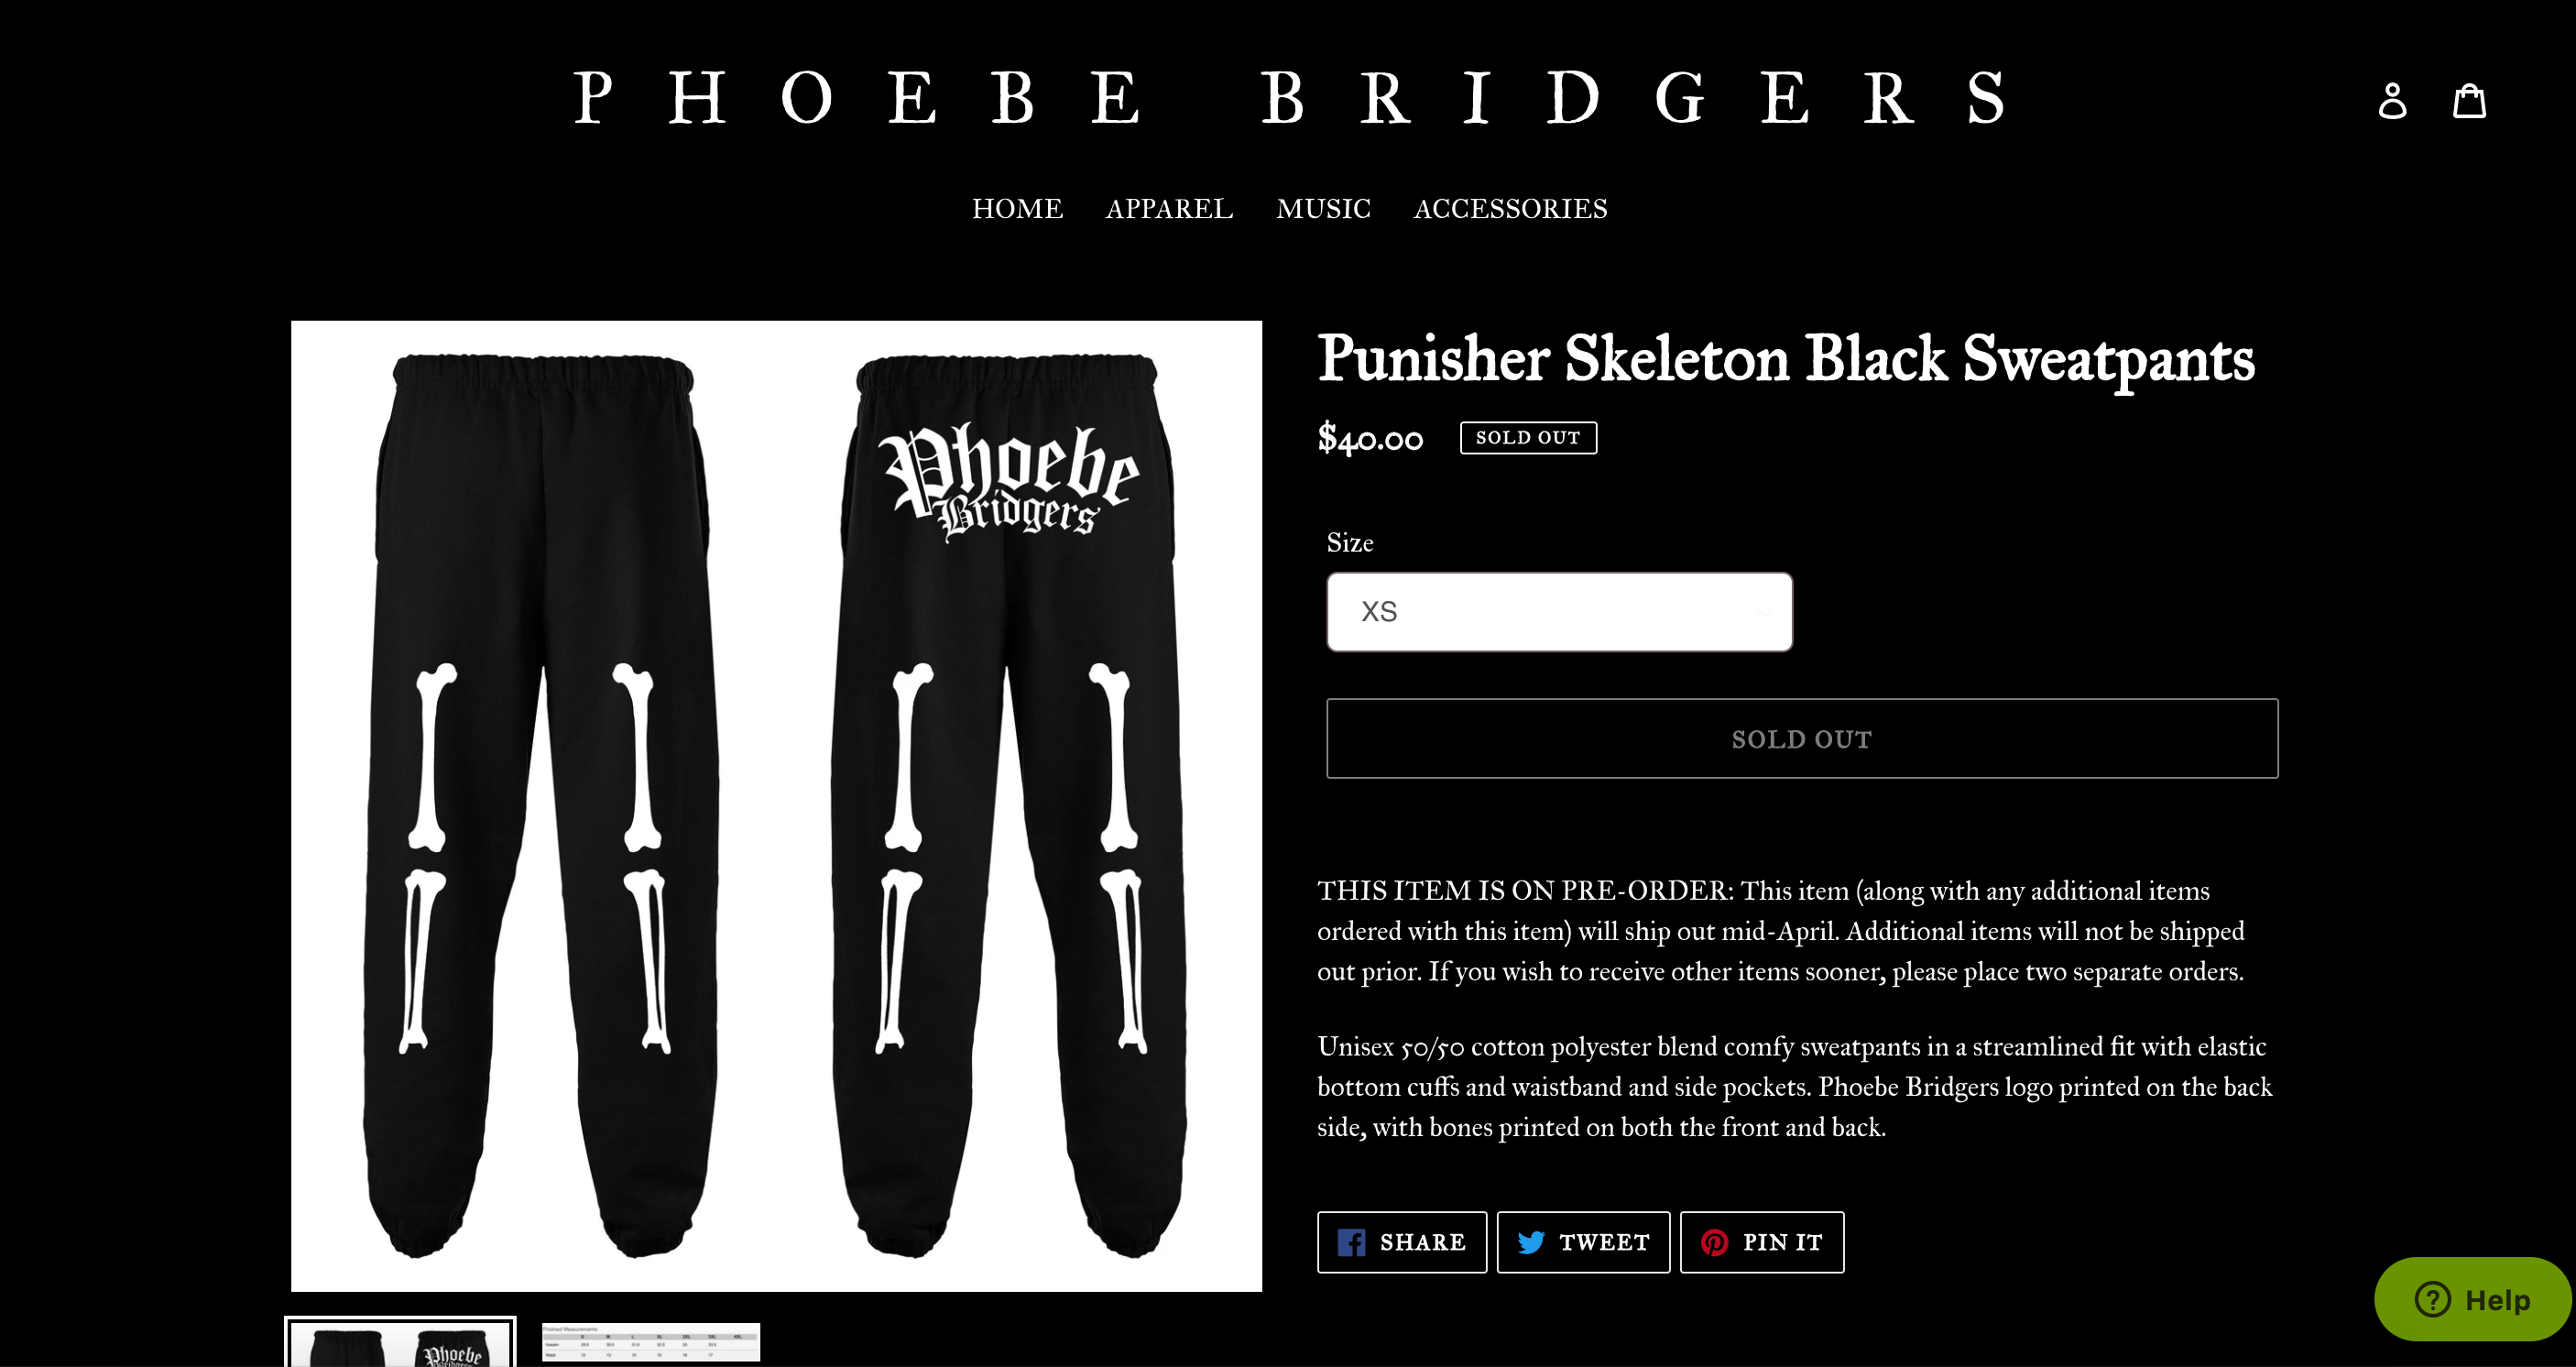 An online storefront featuring a pair of sweatpants.